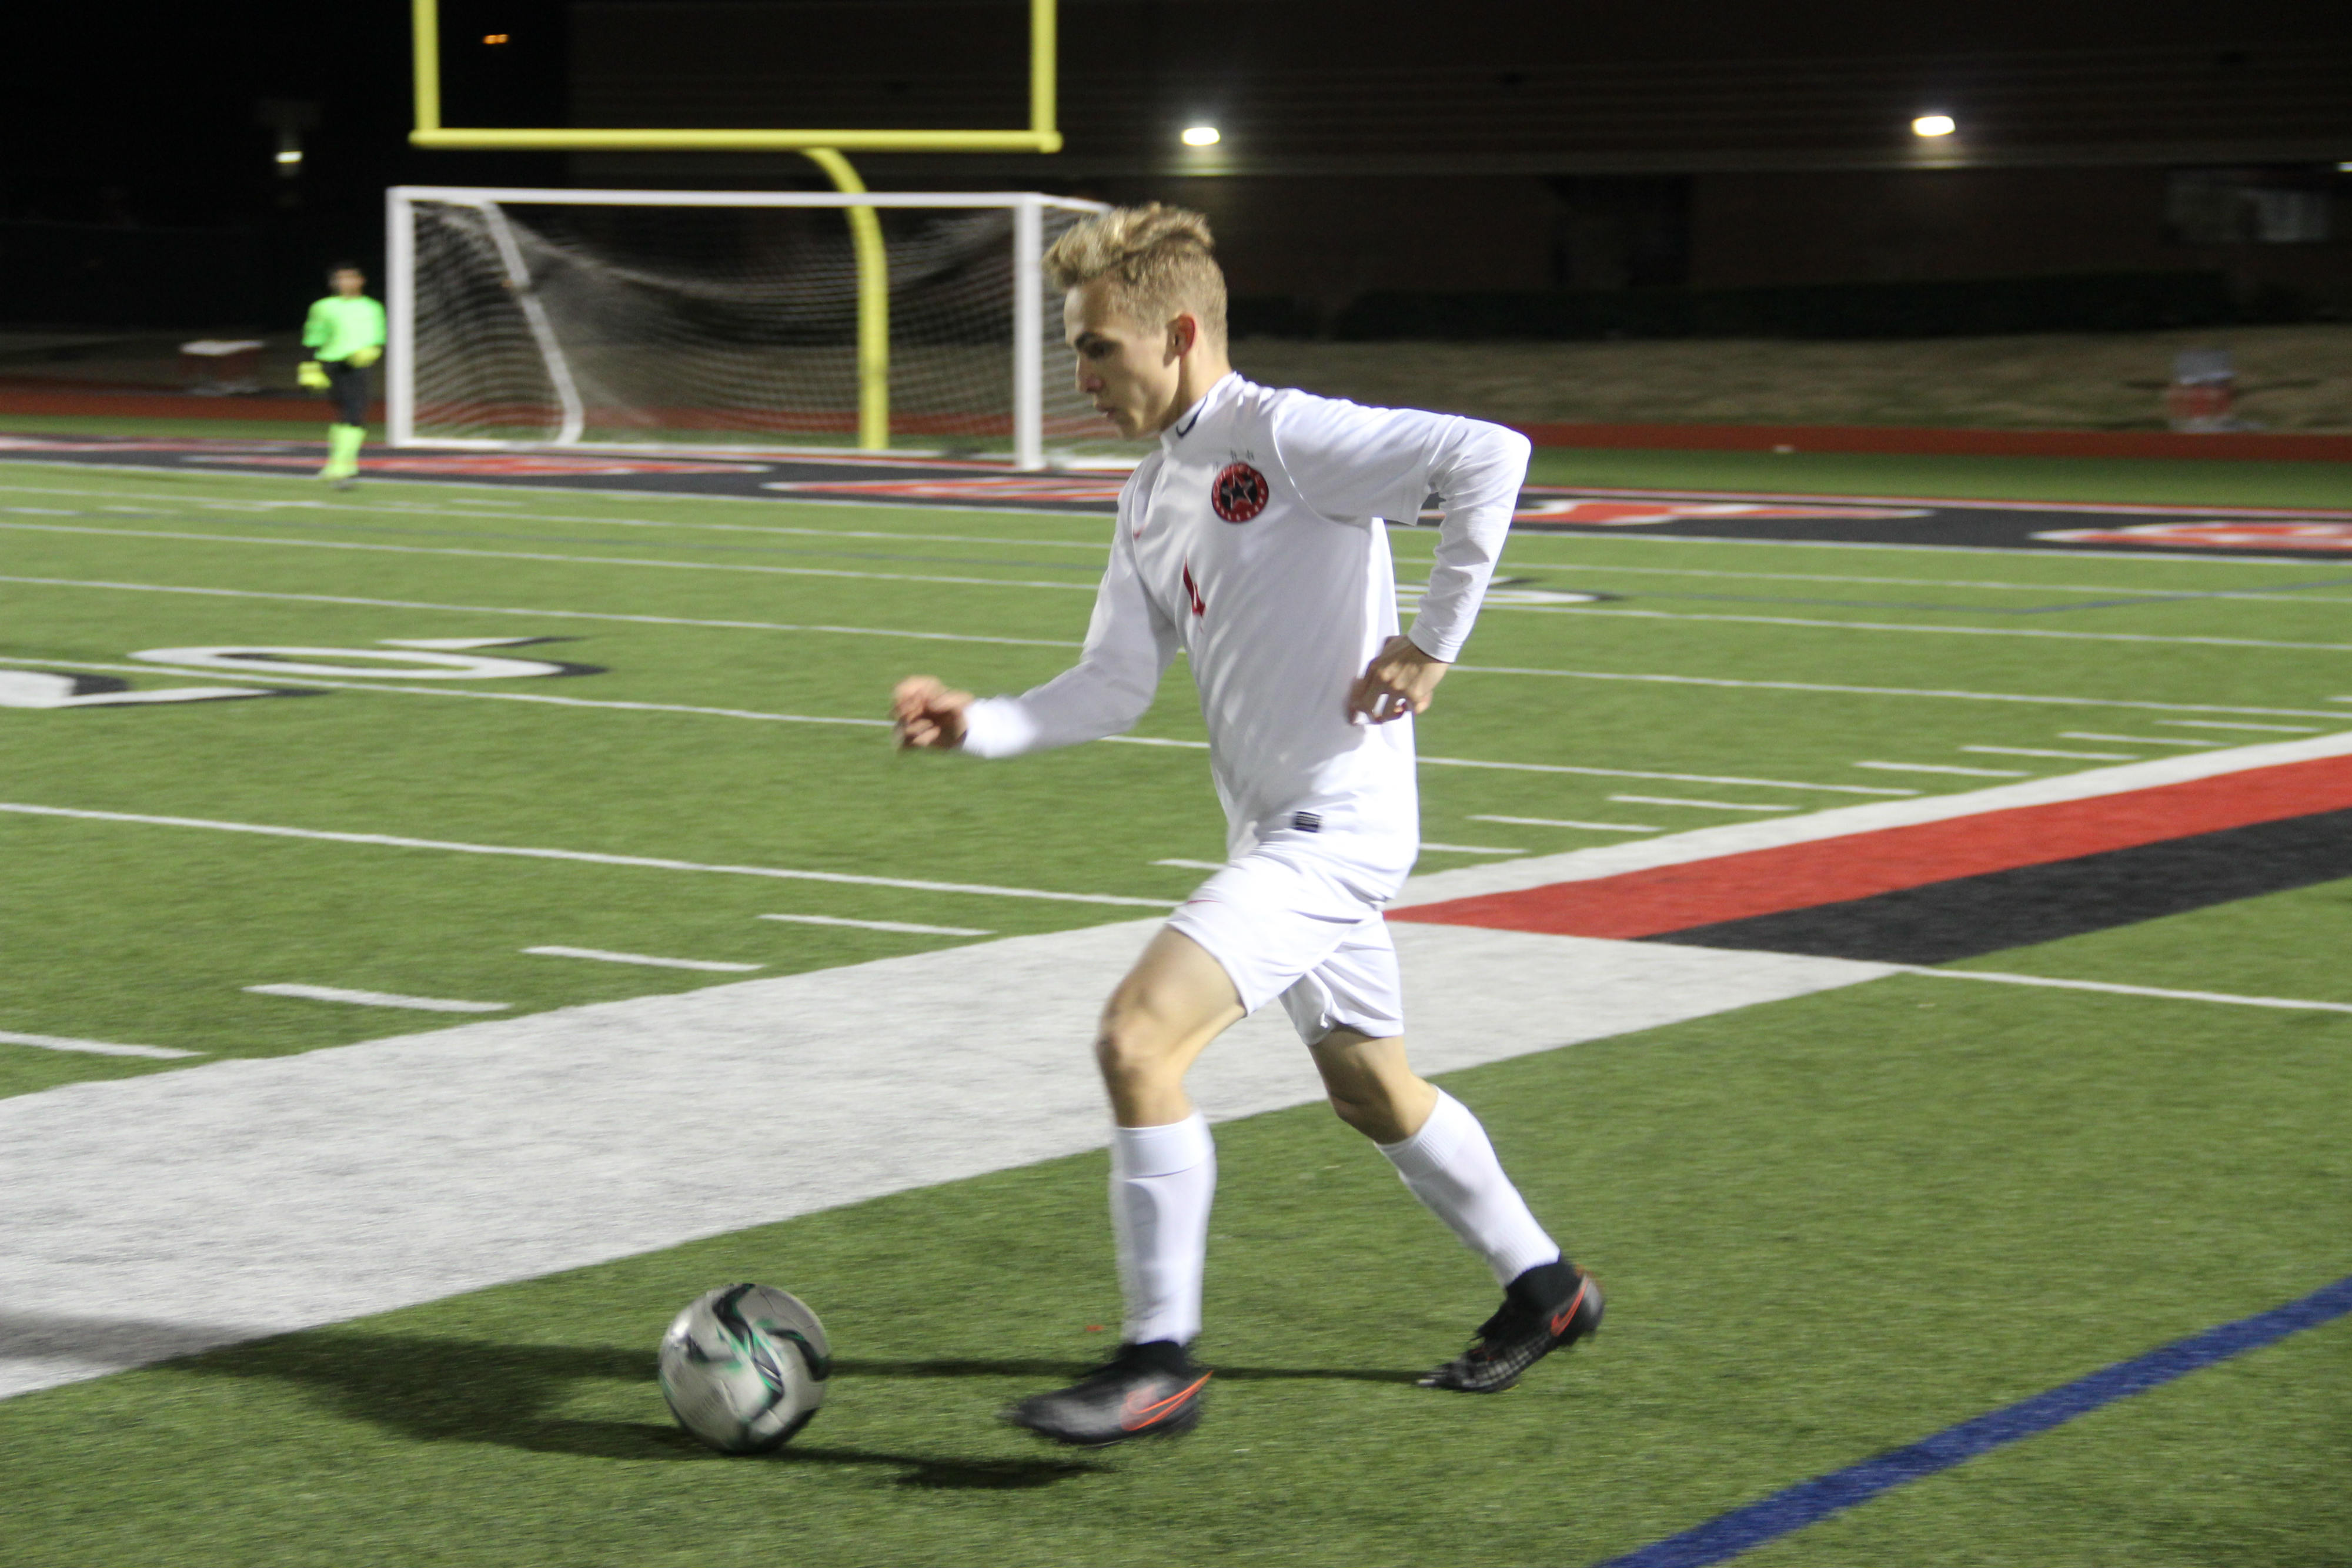 Coppell junior defender Josh Strong looks for an open passing lane in the first half of Coppell's 3-1 victory over Richardson Pearce on Friday night. Strong and the defense rebounded from an early goal to hold the Mustangs scoreless for the final 74 minutes of play.